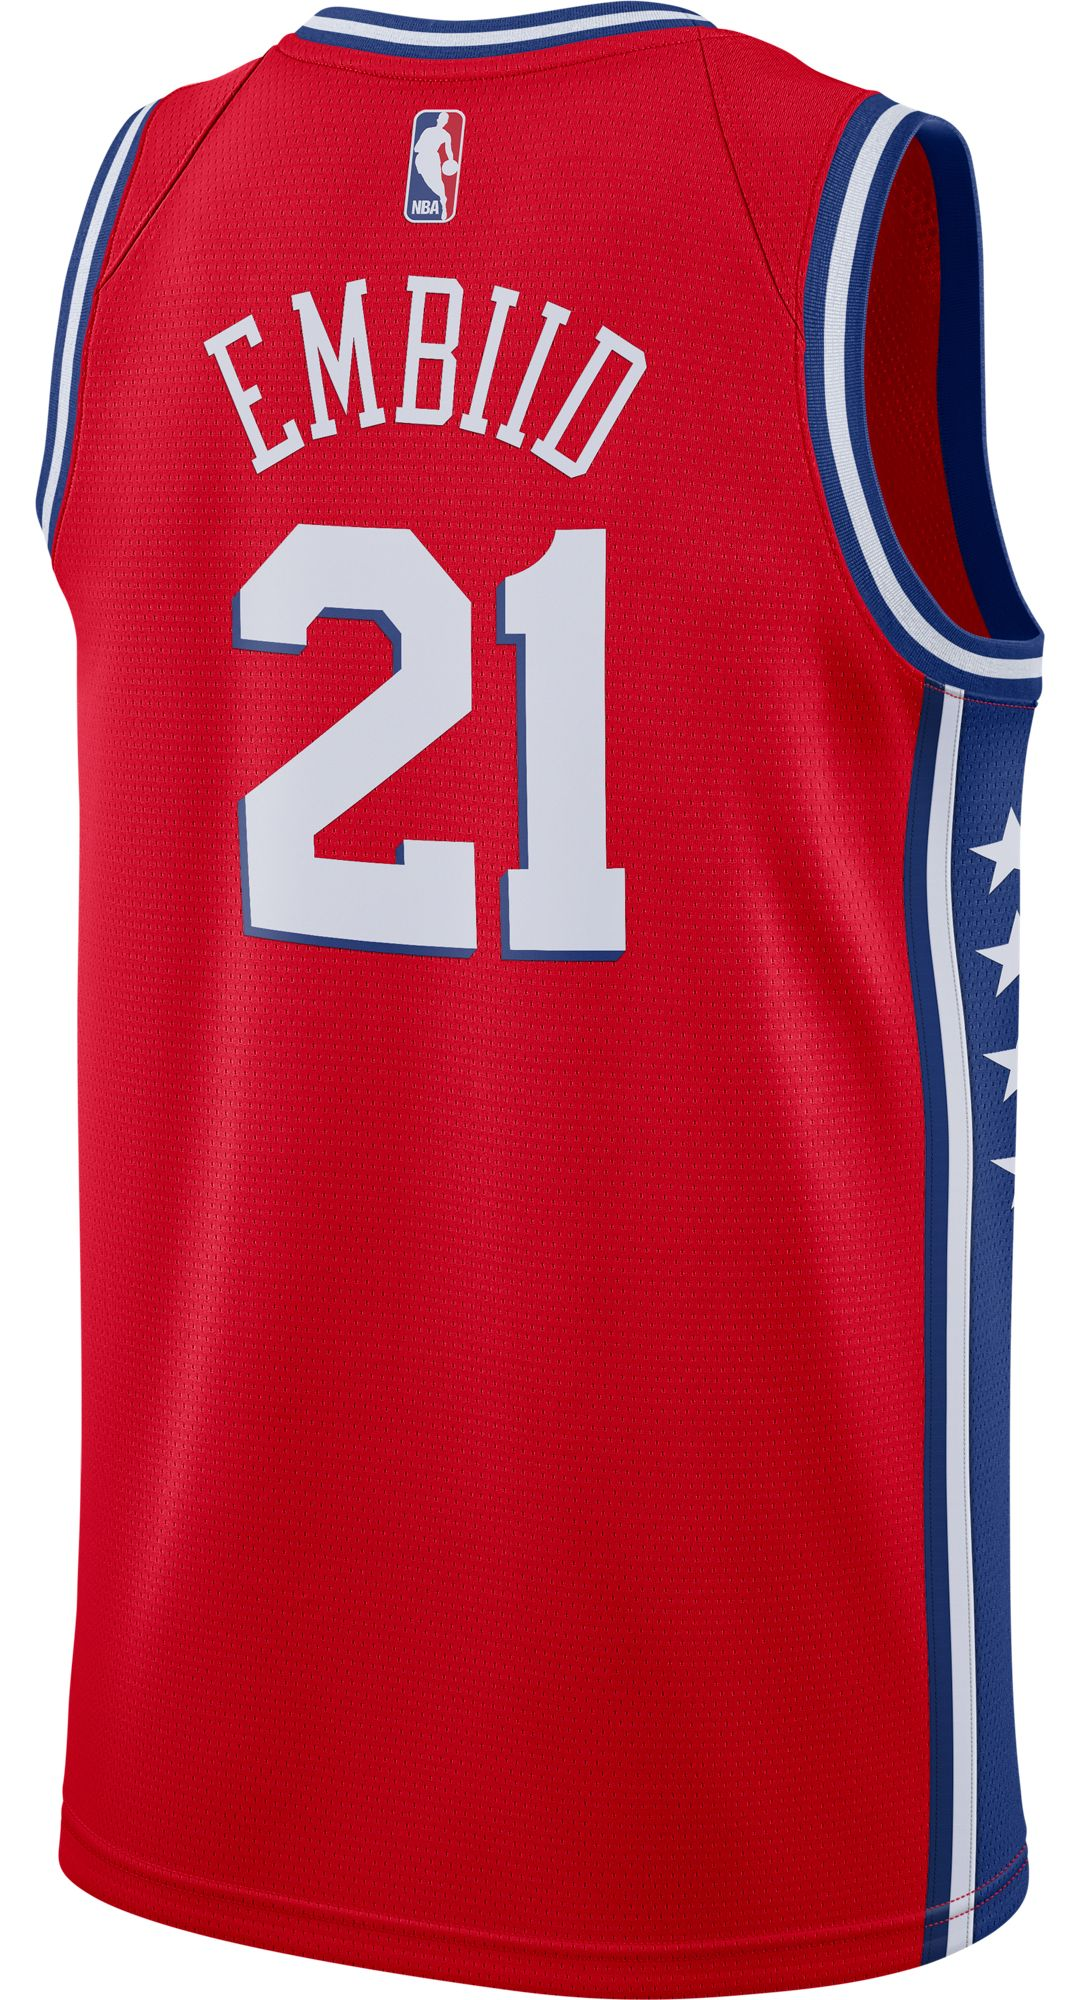 official photos 6455c a3e69 Nike Men's Philadelphia 76ers Joel Embiid #21 Red Dri-FIT Swingman Jersey